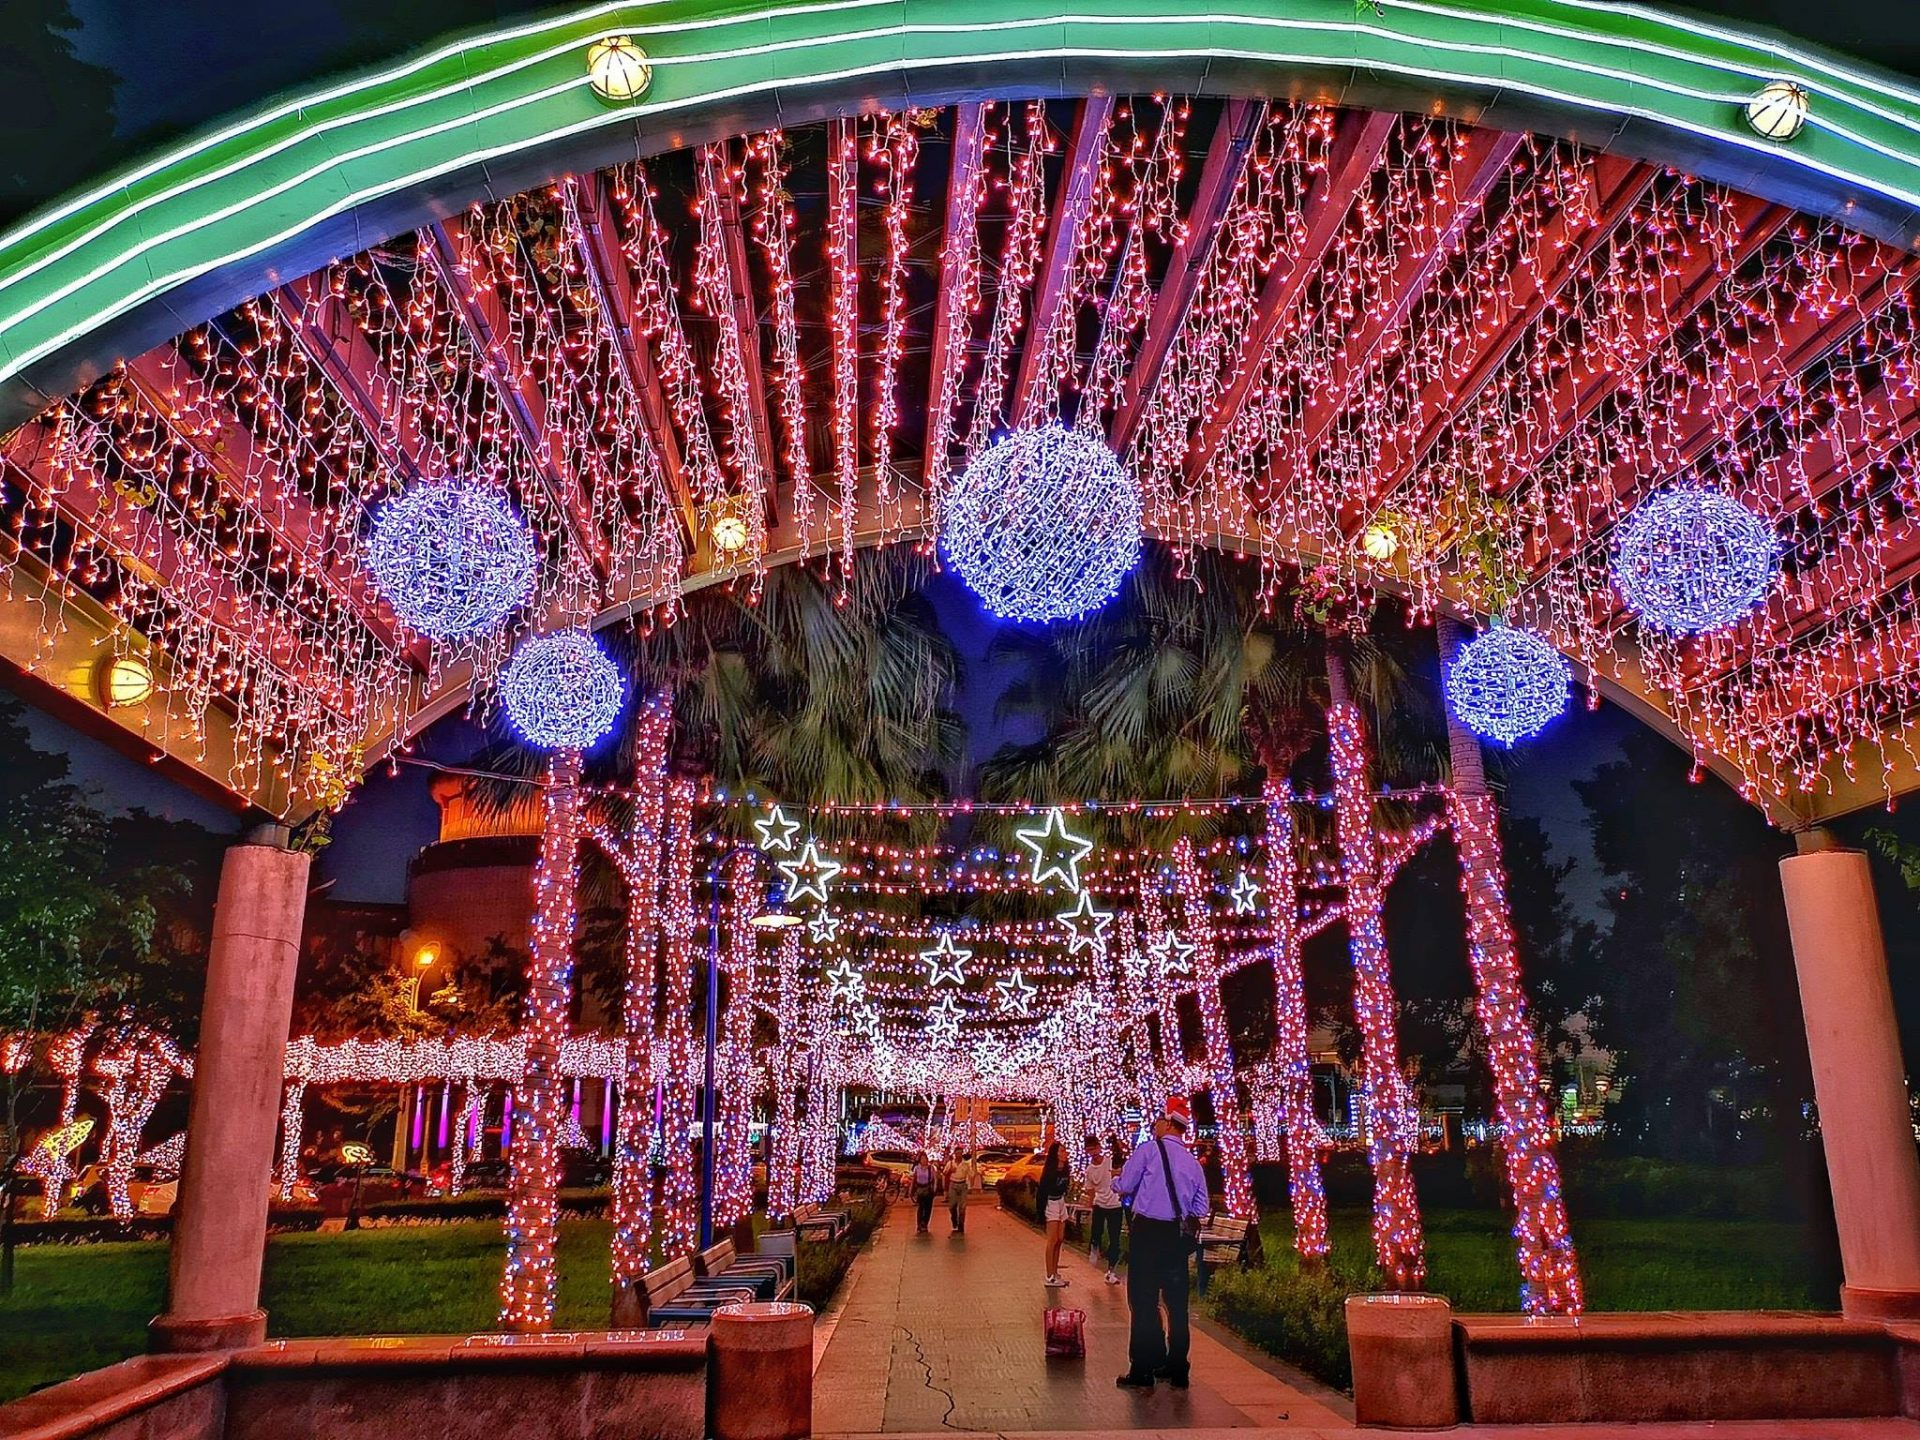 The park adjacent to the New Taipei City Government Hall is colorfully decorated. (Image: Courtesy of Xing-Mei in Keelung